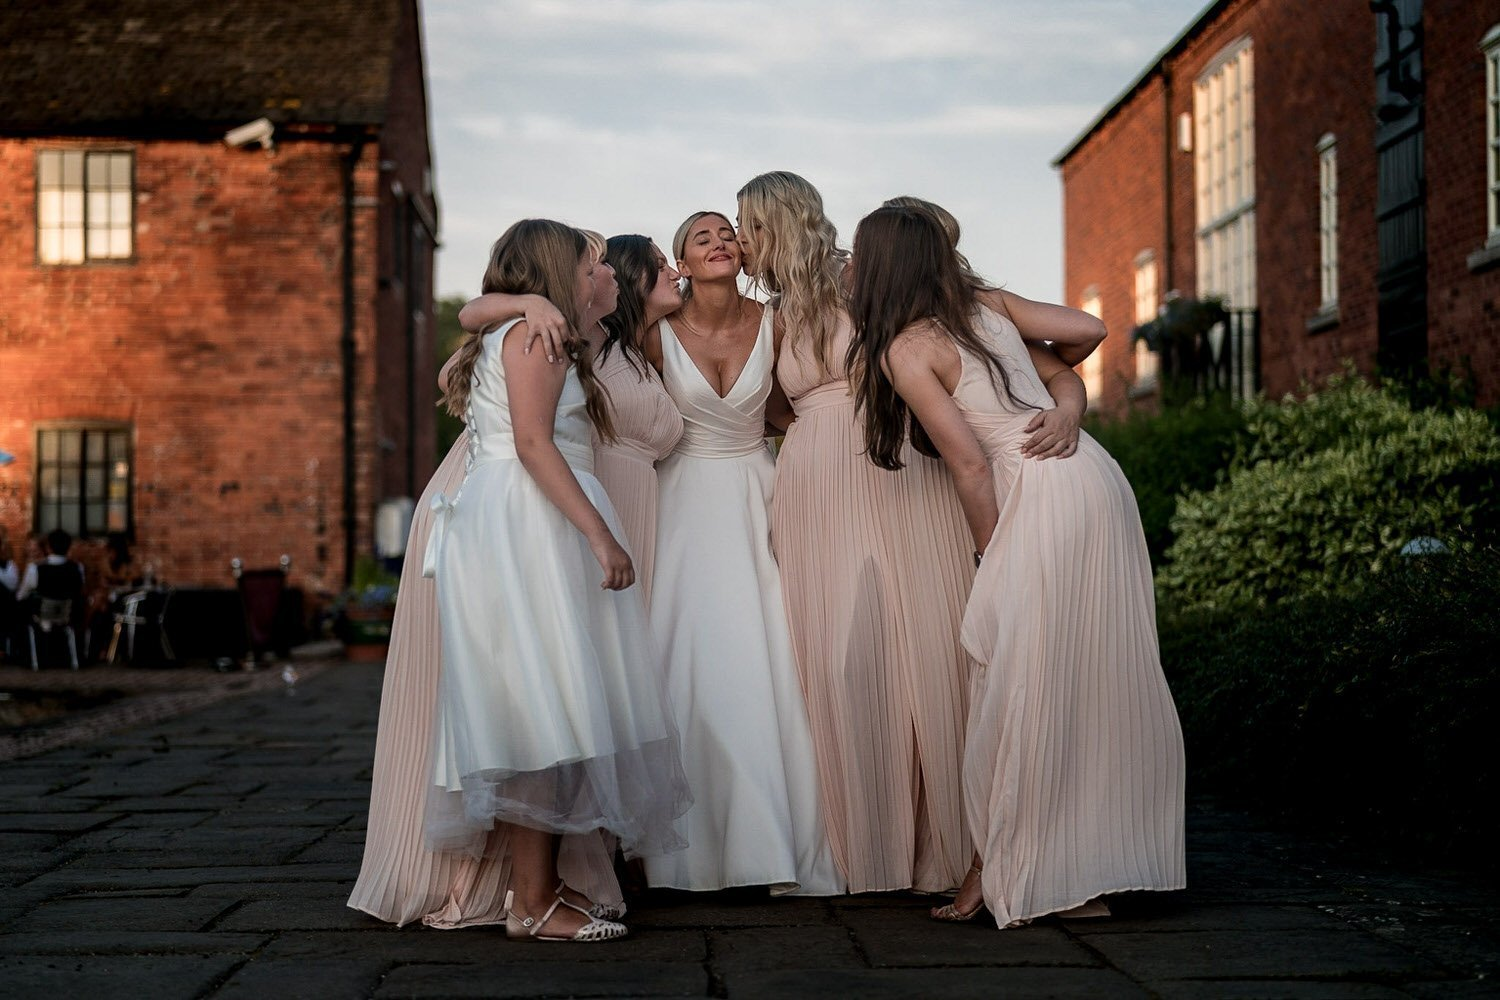 The Waterfront Market Harborough Weddings Photography bridesmaids hugging the bride on the tow path outside the venue